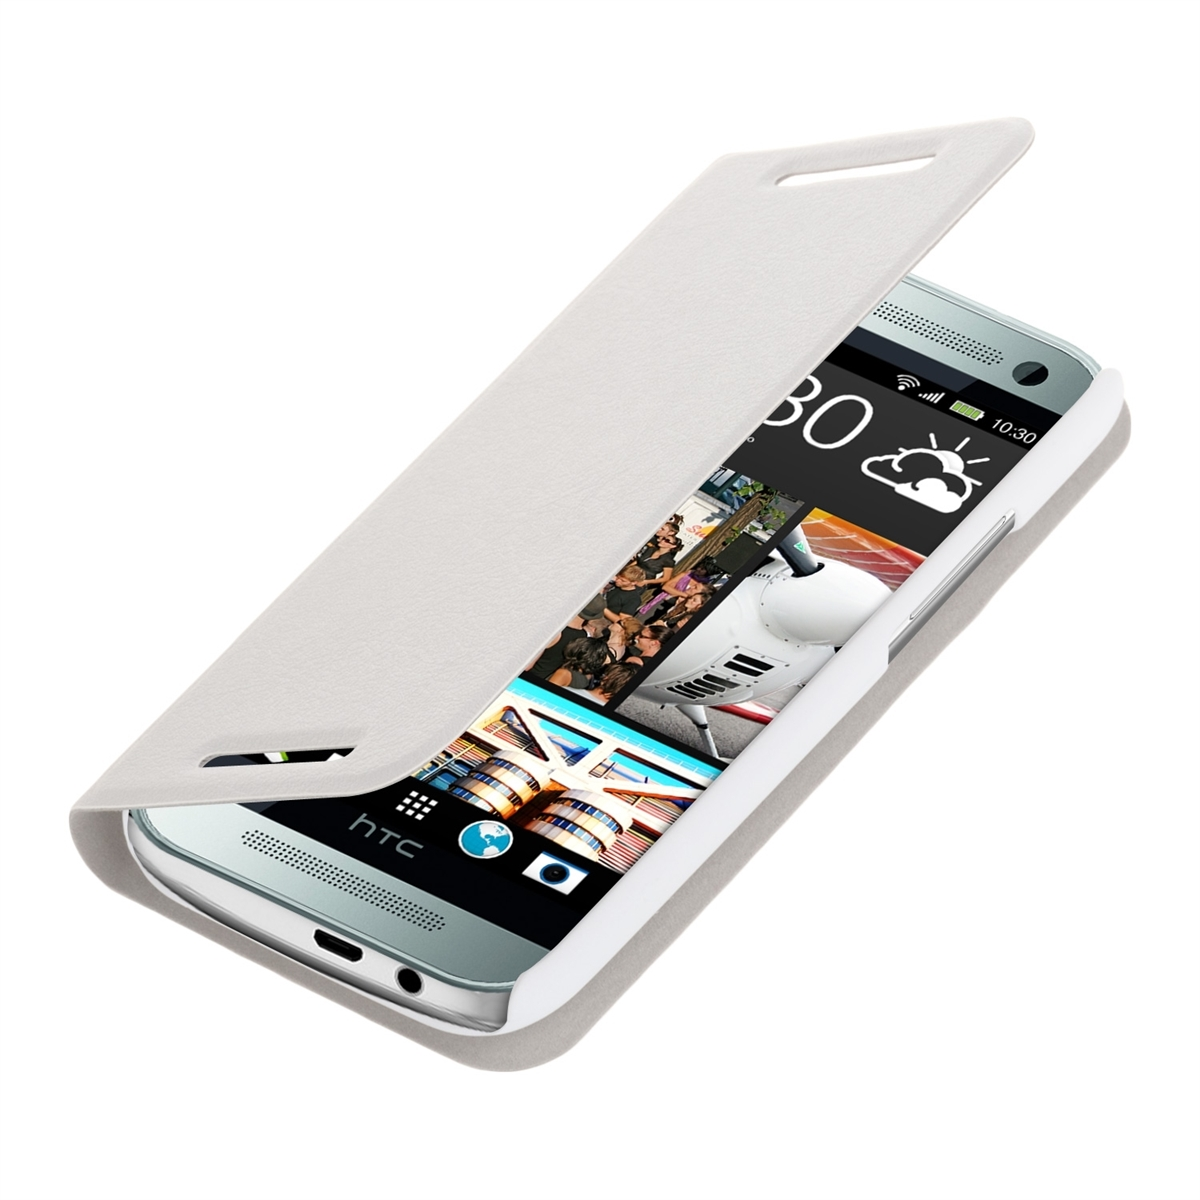 kwmobile-FLIP-COVER-FUR-HTC-ONE-MINI-2-SCHUTZ-HULLE-HANDY-CASE-SLIM-ETUI-TASCHE